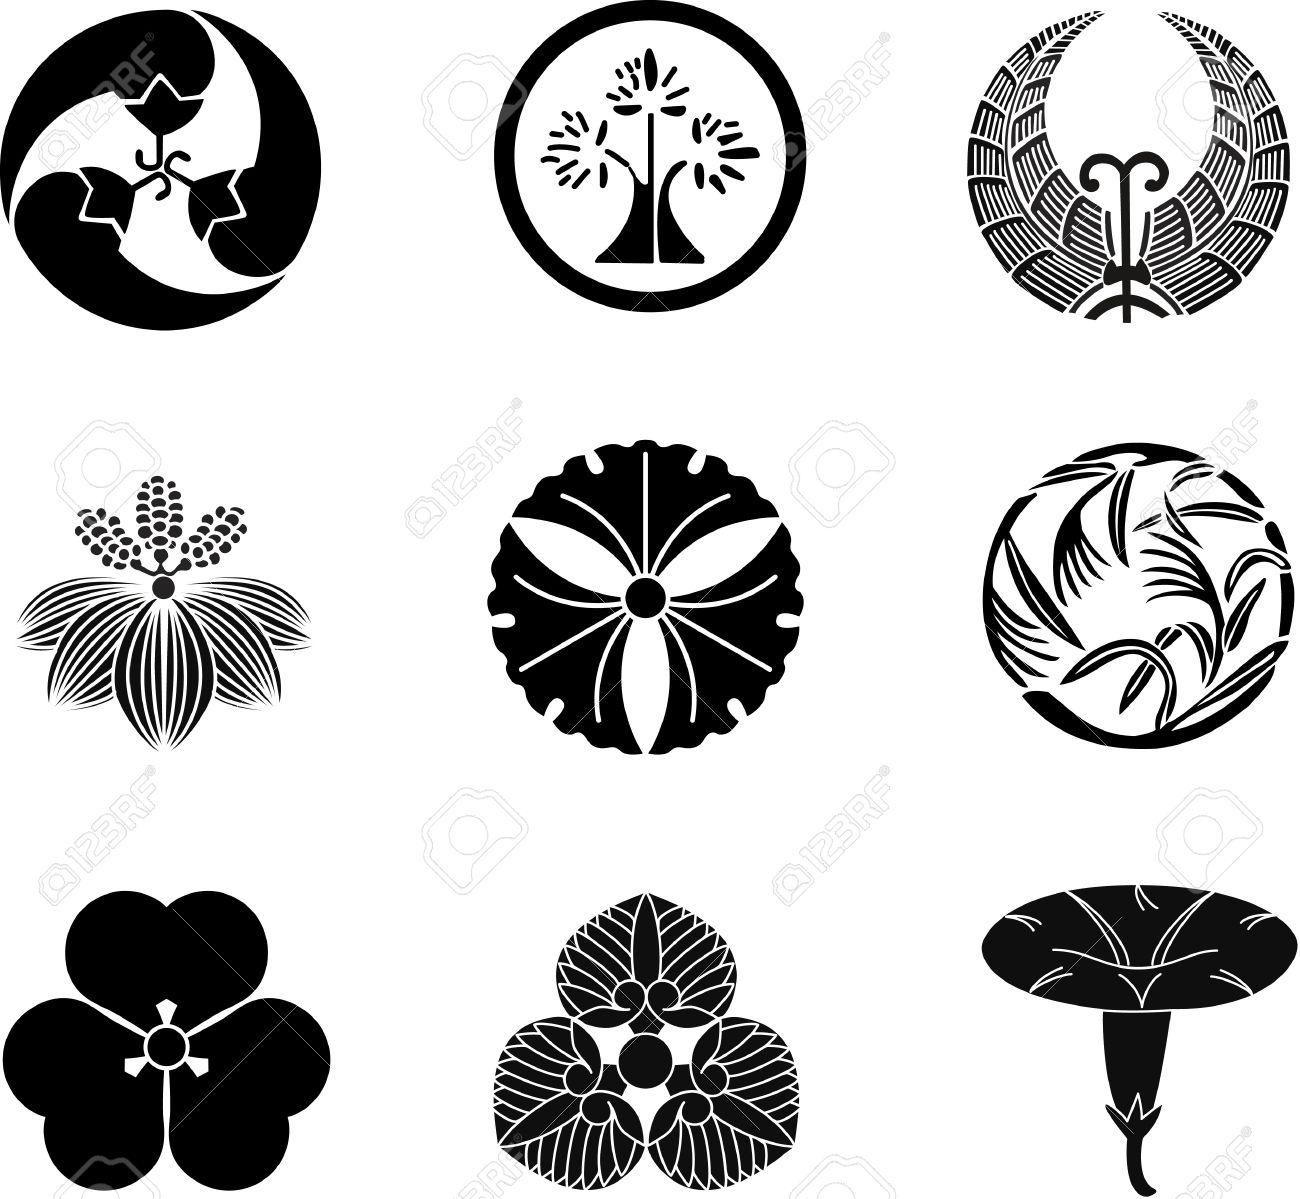 Japanese flower symbols gallery symbol and sign ideas japanese family crests vector 11 royalty free cliparts vectors japanese family crests vector 11 stock vector biocorpaavc